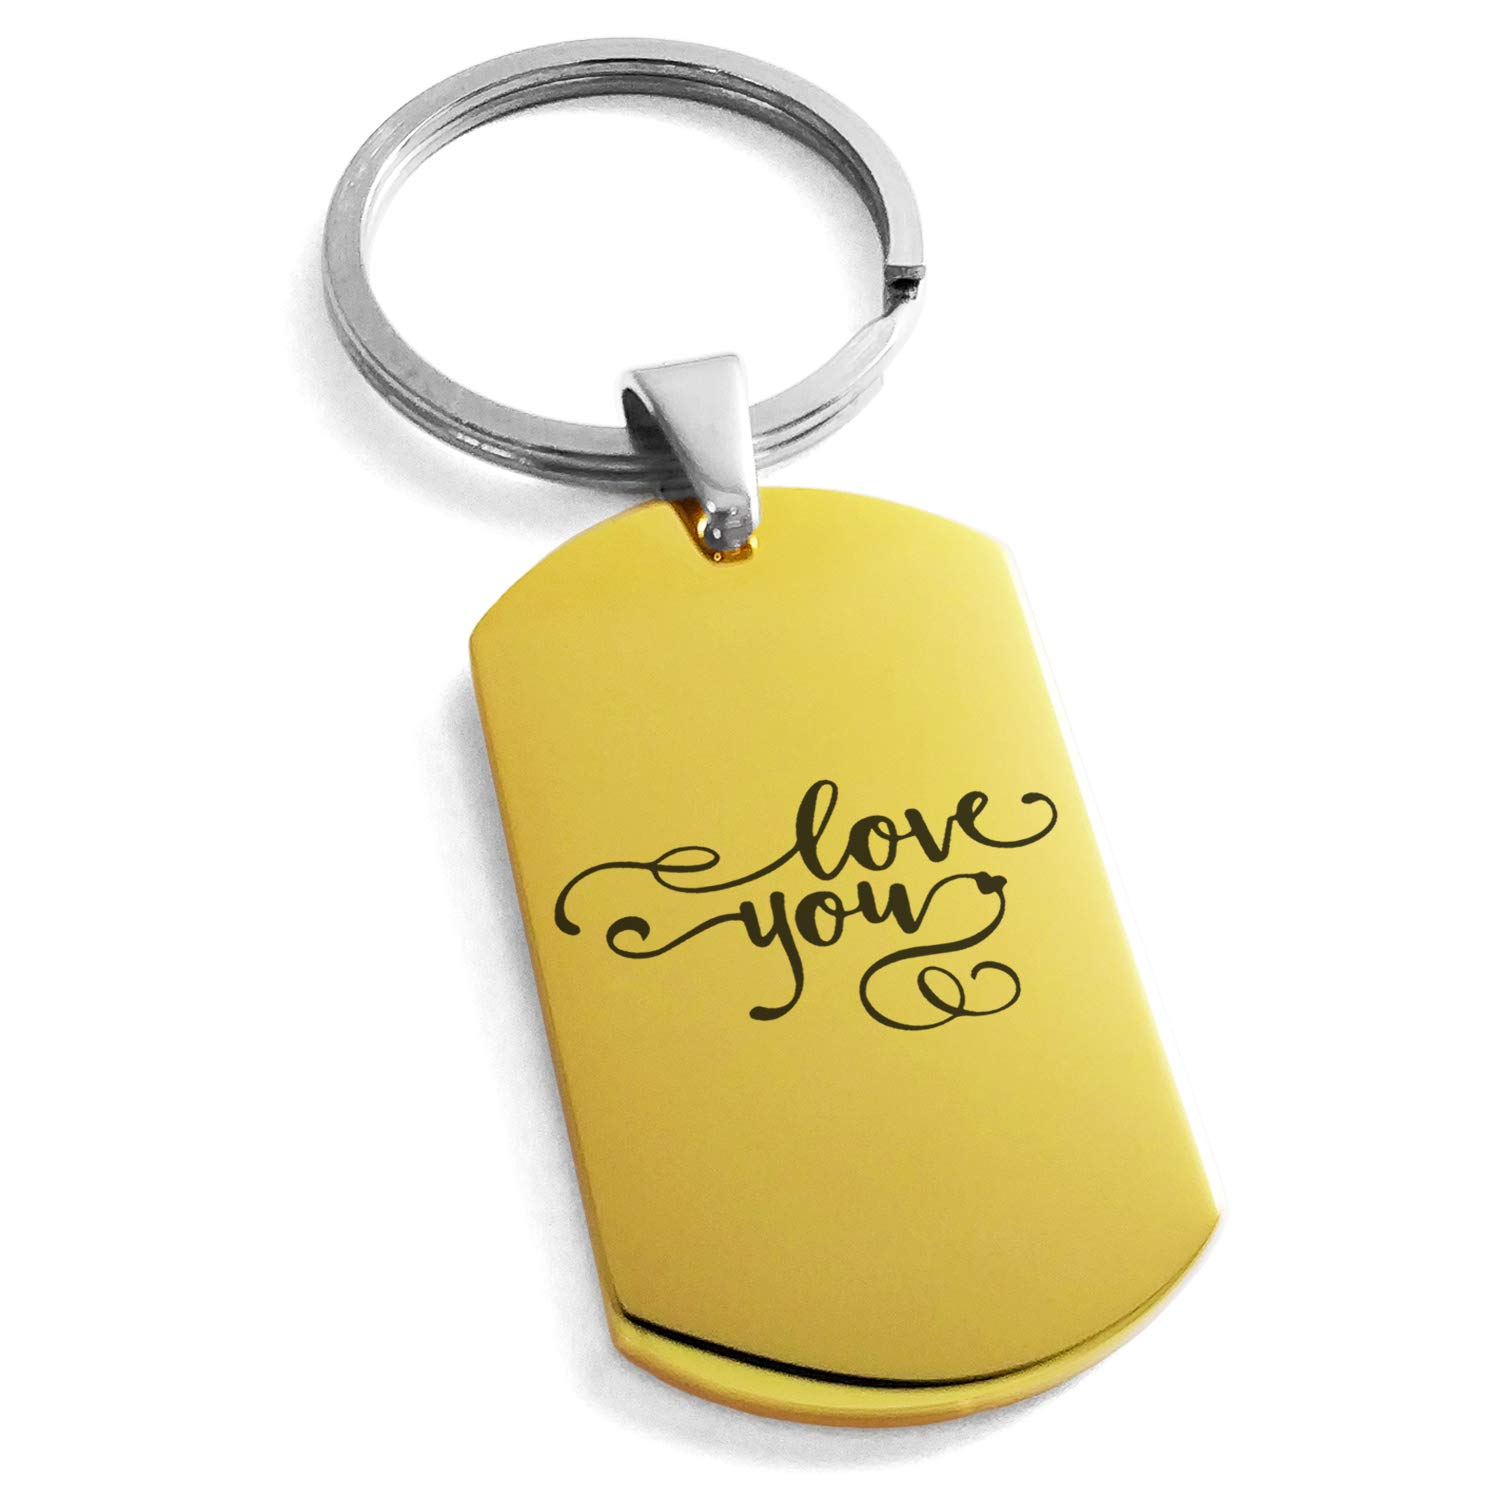 Tioneer Gold Plated Stainless Steel Love You Calligraphy Swirl Engraved Dog Tag Keychain Keyring